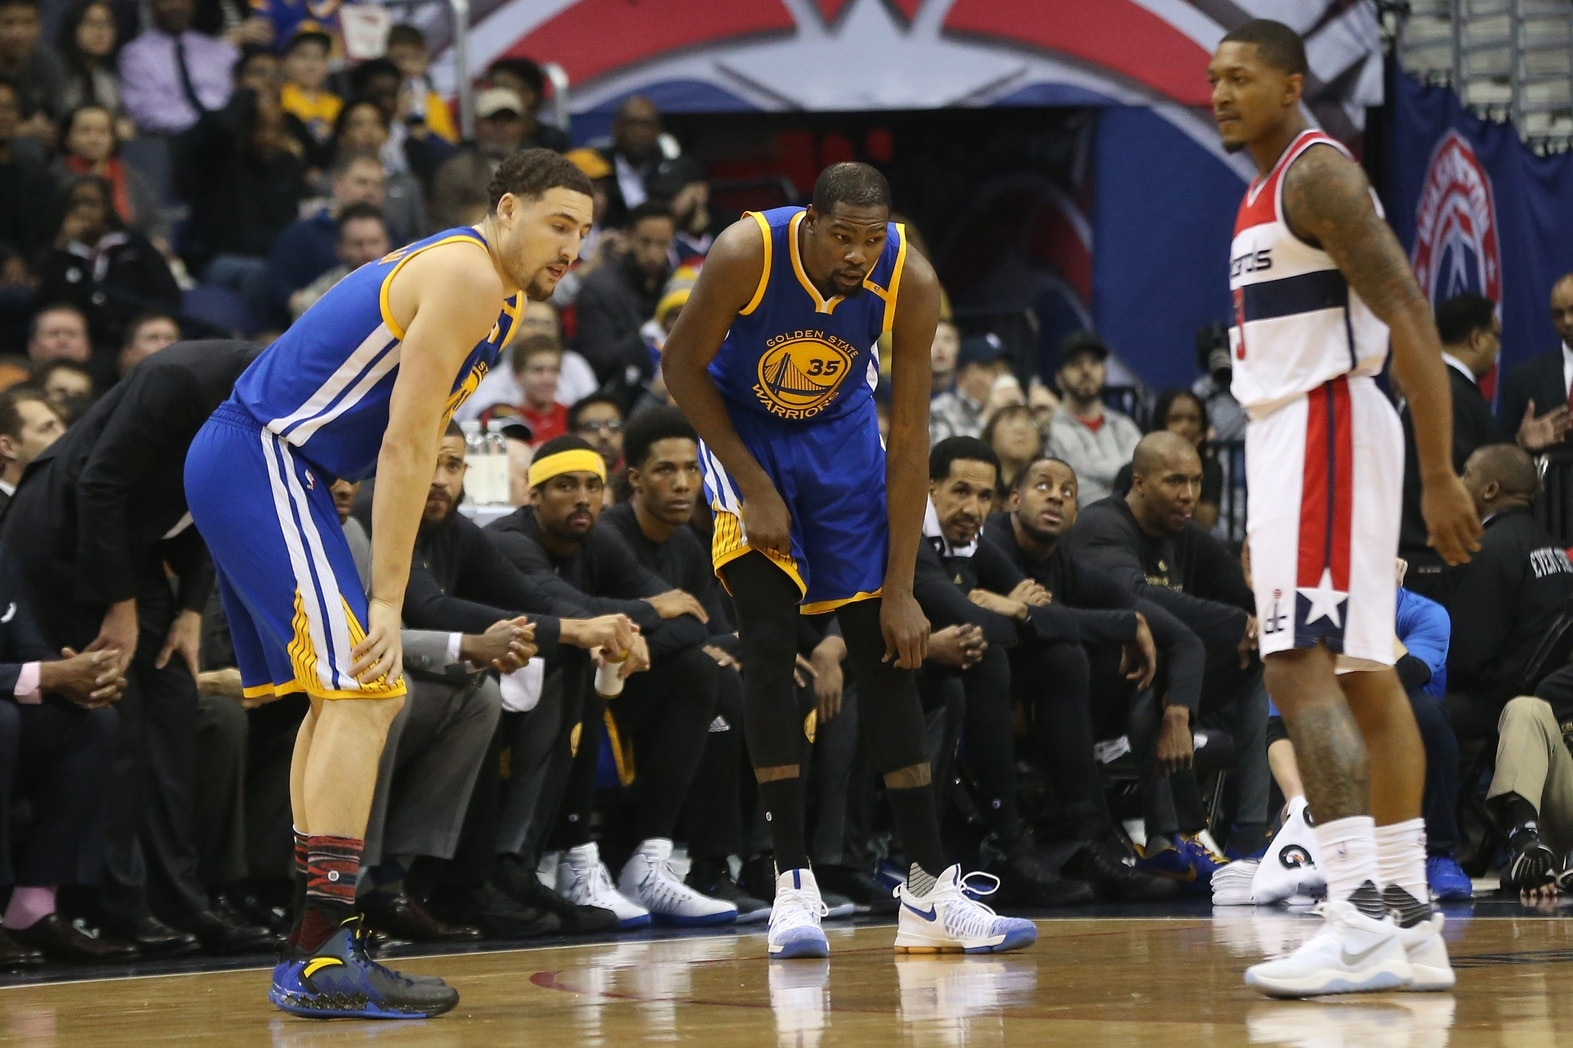 Feb 28, 2017; Washington, DC, USA; Golden State Warriors forward Kevin Durant (35) holds his knee after being injured against the Washington Wizards in the first quarter at Verizon Center. Mandatory Credit: Geoff Burke-USA TODAY Sports